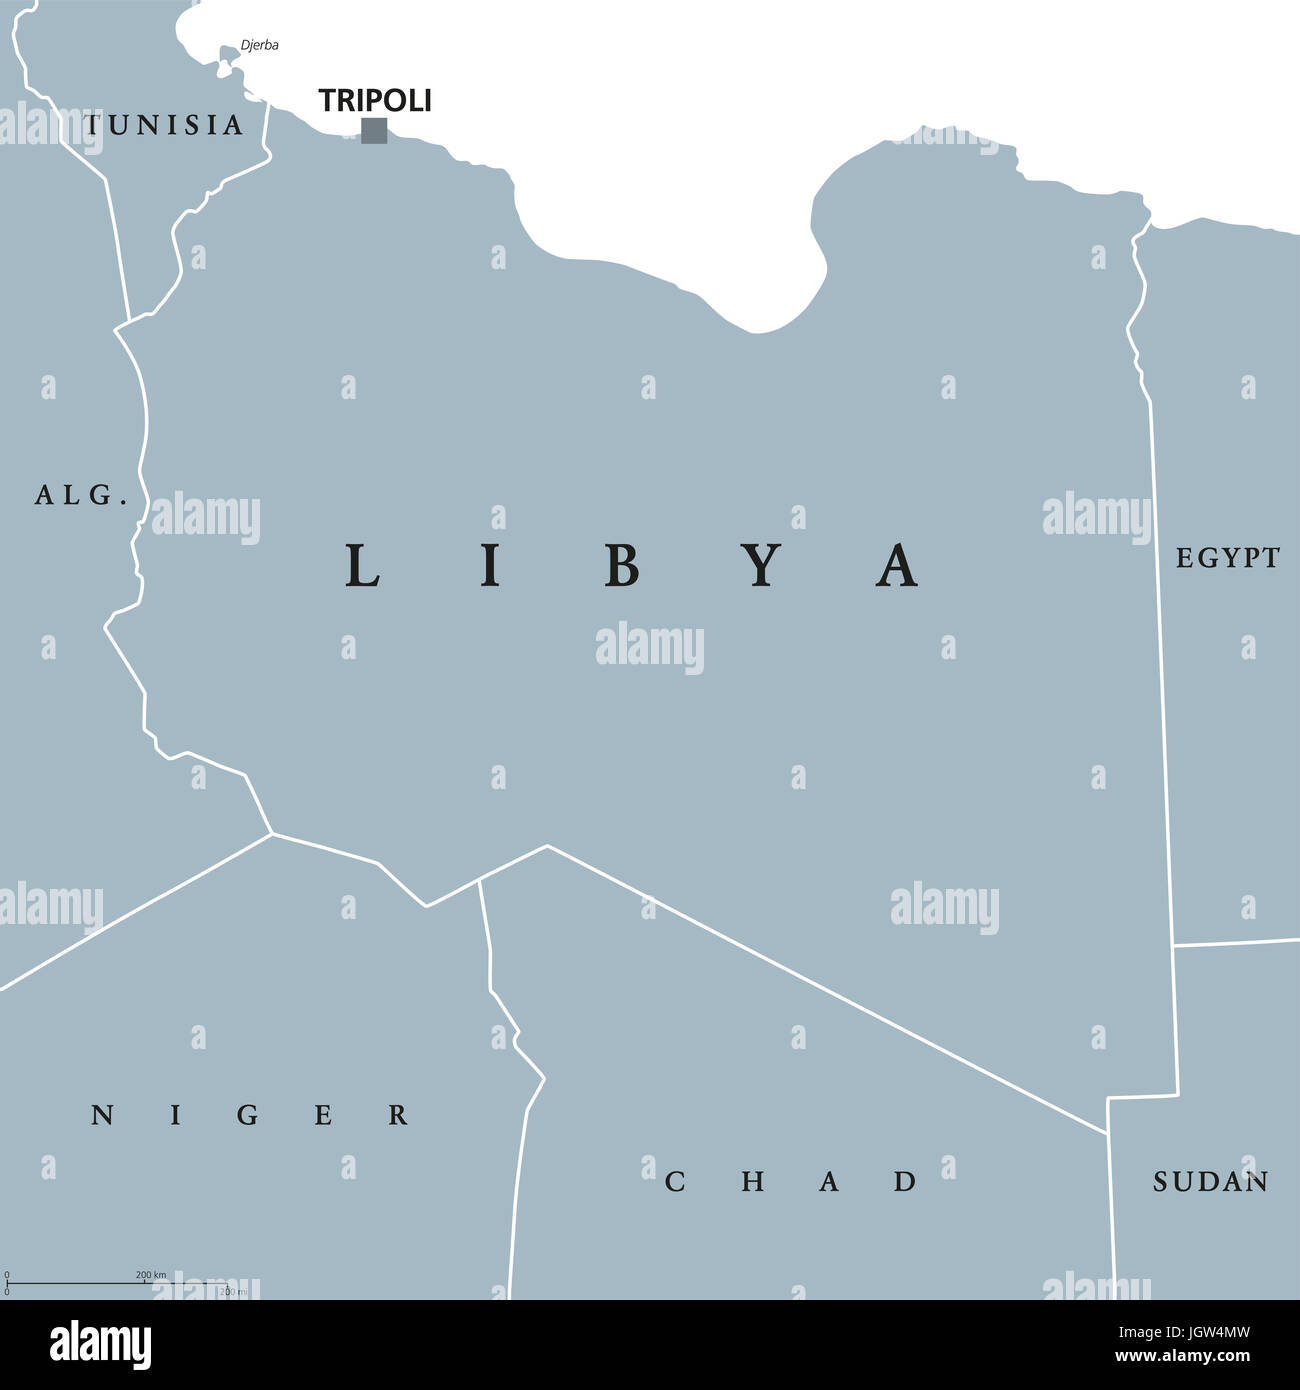 Libya Political Map With Capital Tripoli With National Borders - Tunisia country political map